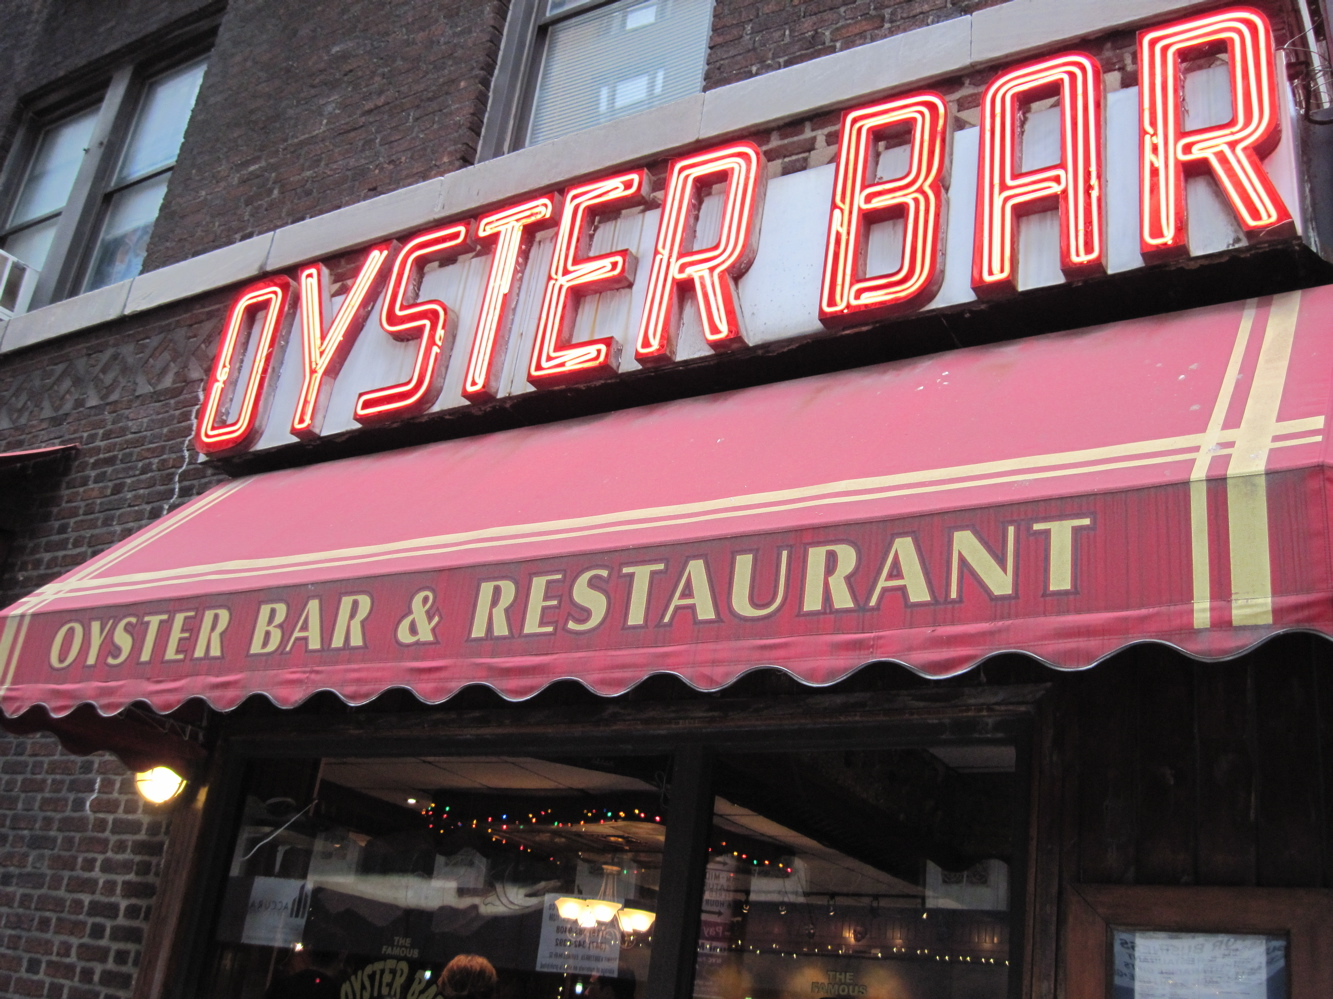 Bizarre deli names | Ephemeral New York